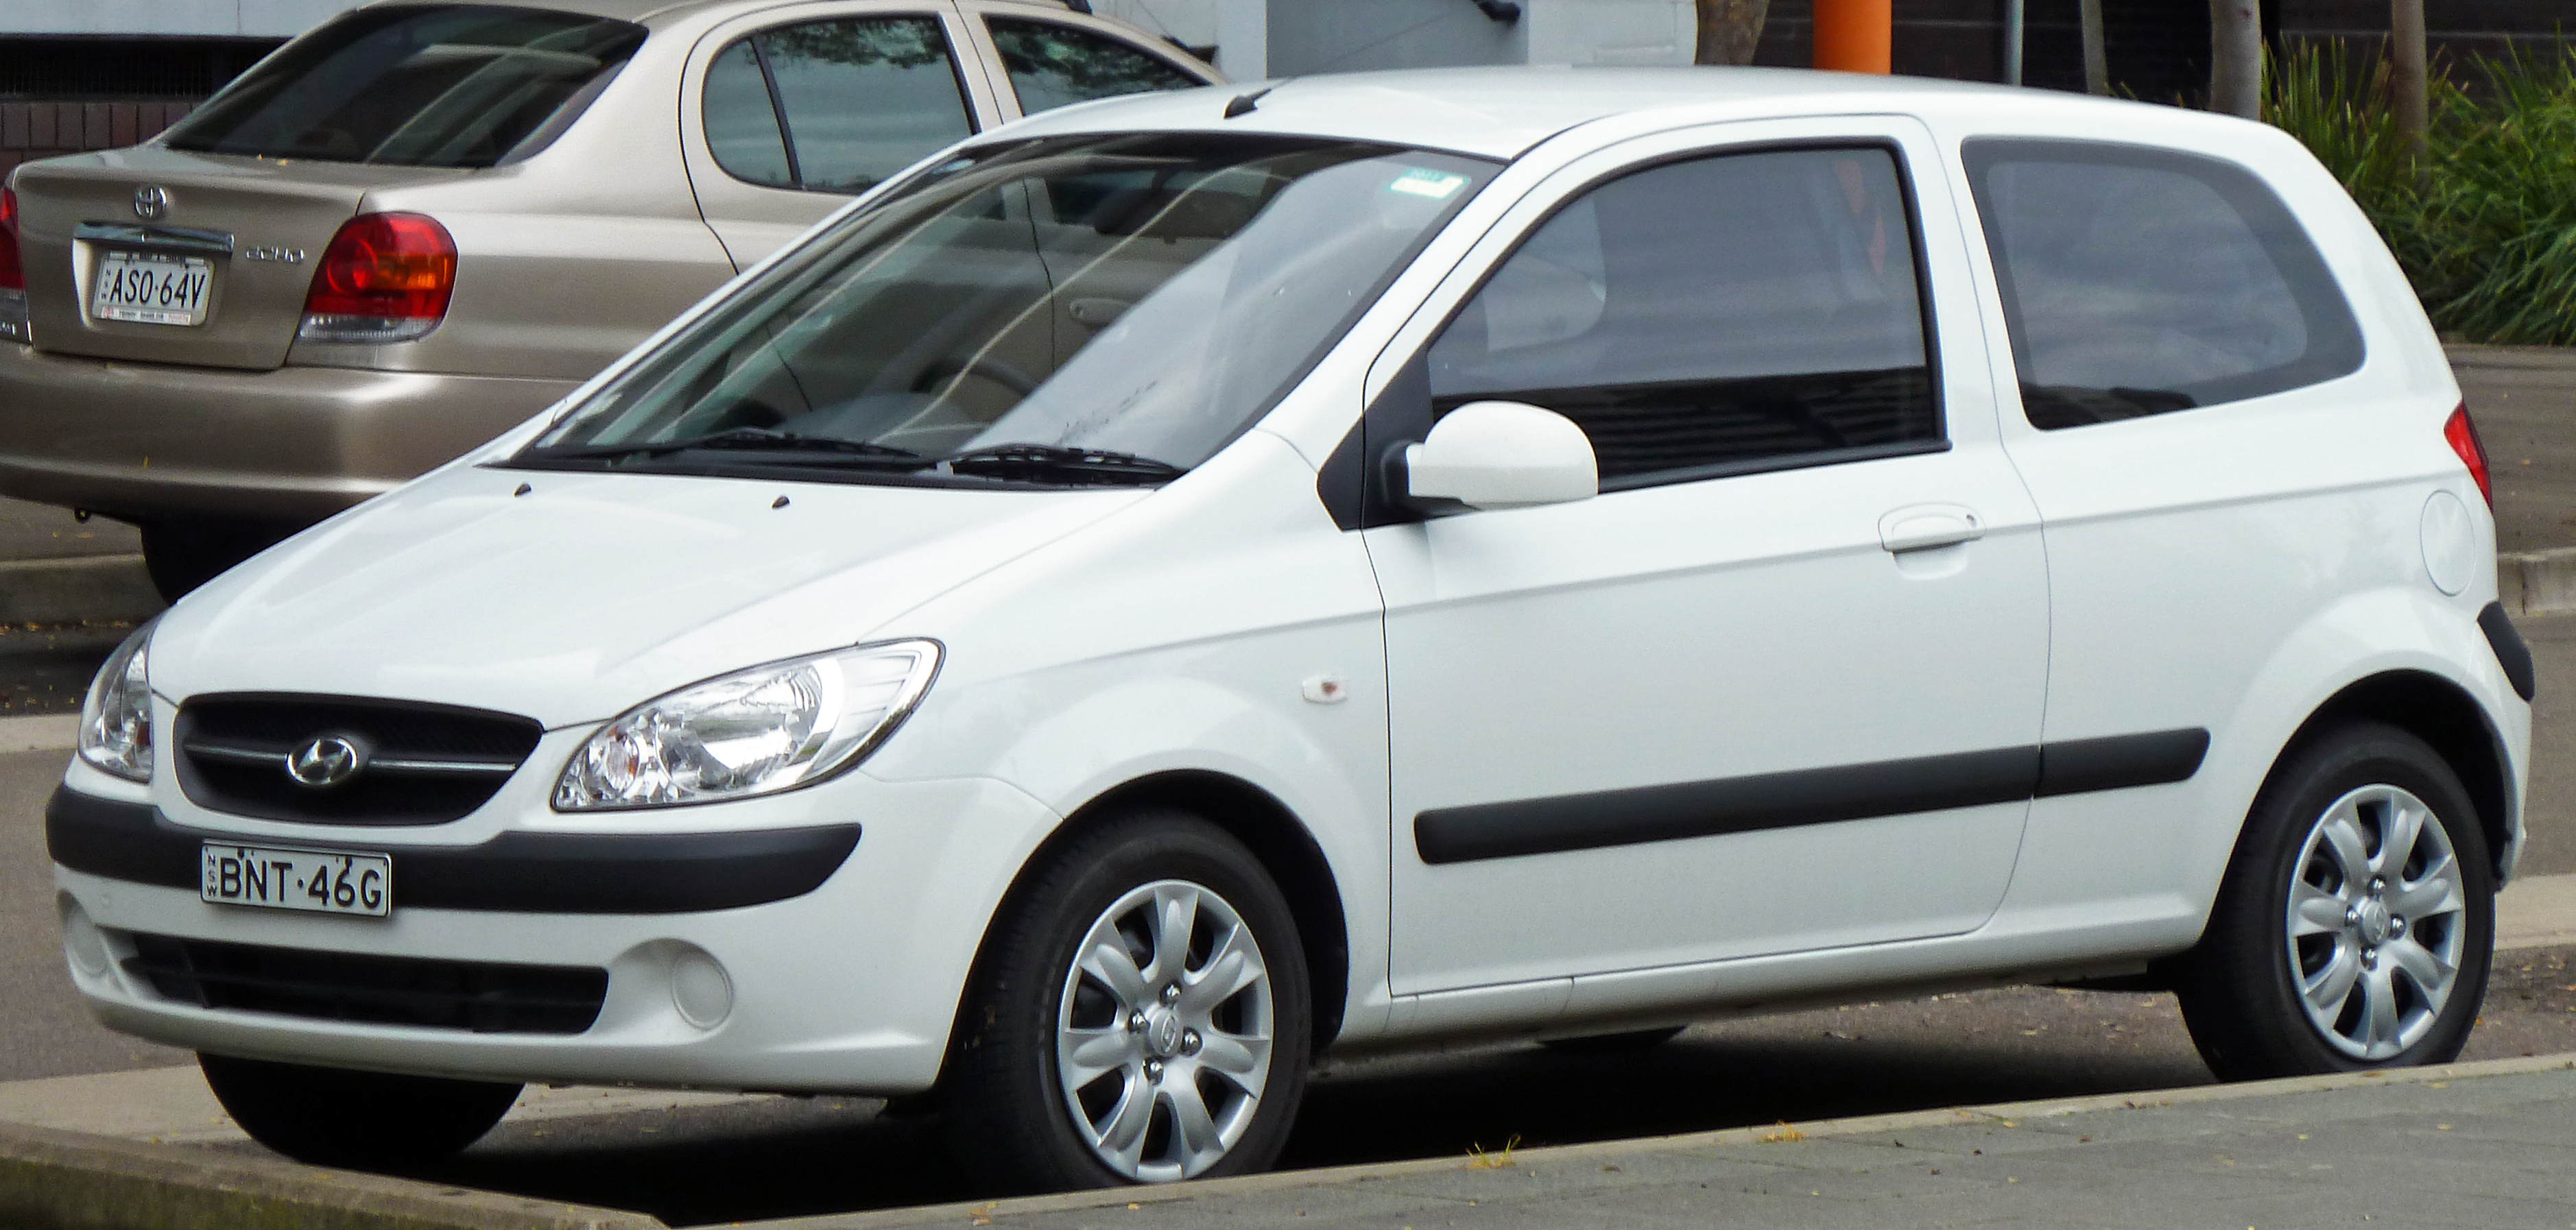 2010 hyundai getz photos informations articles. Black Bedroom Furniture Sets. Home Design Ideas